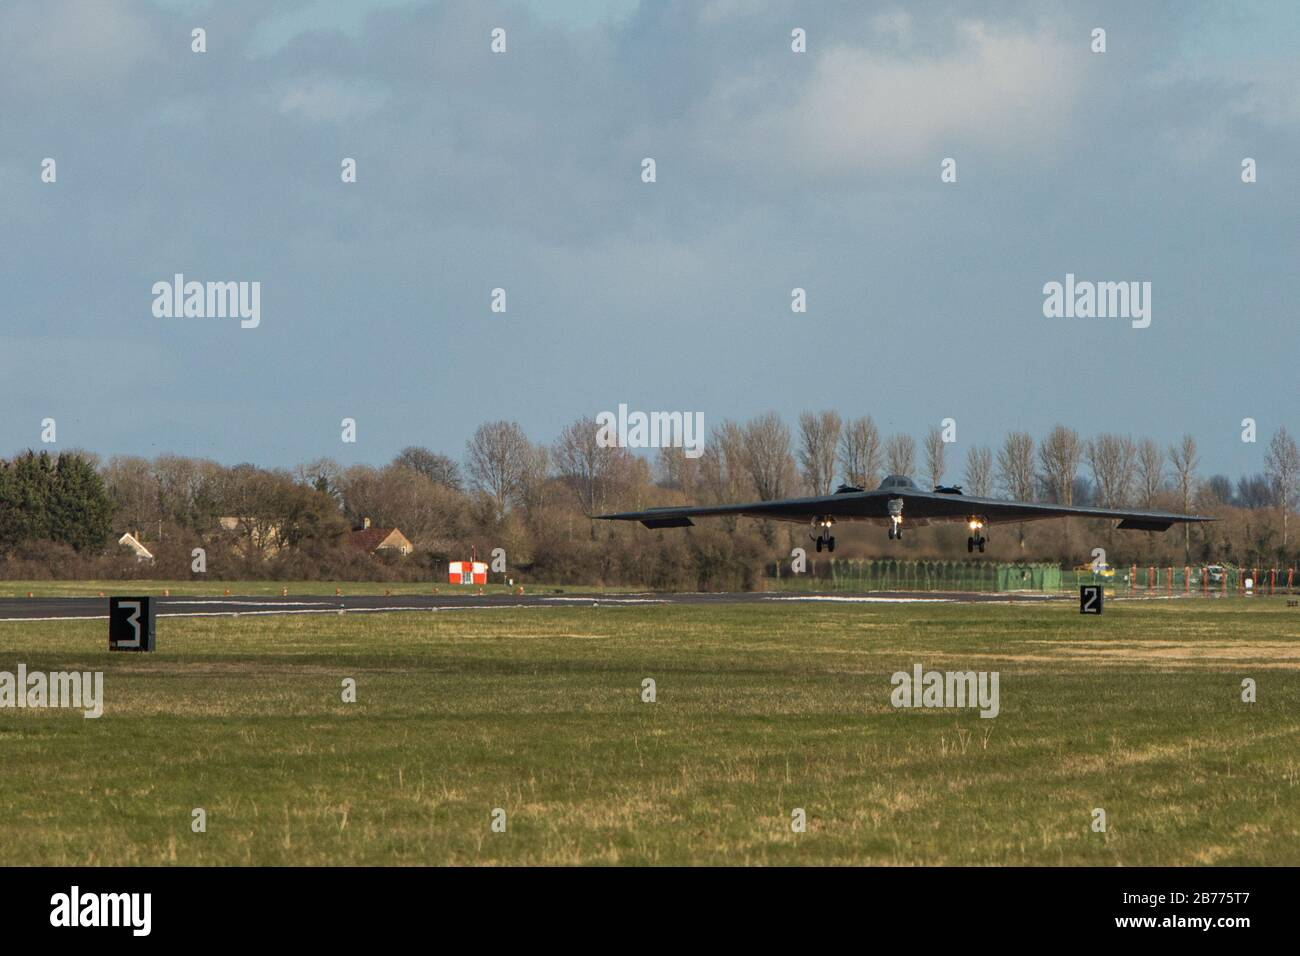 A B-2 Spirit Stealth Bomber, assigned to Whiteman Air Force Base, Missouri, lands at RAF Fairford, England, on March 12, 2020. The aircraft is deployed as part of Bomber Task Force Europe, which tests the readiness of the Airmen and equipment that support it, as well as their collective ability to operate at forward locations. U.S. Strategic Command routinely conducts such operations across the globe to demonstrate U.S. commitment to collective defense as these aircraft, Airmen and key support equipment from Whiteman Air Force Base, Missouri, integrate with Geographic Combatant Command operati Stock Photo